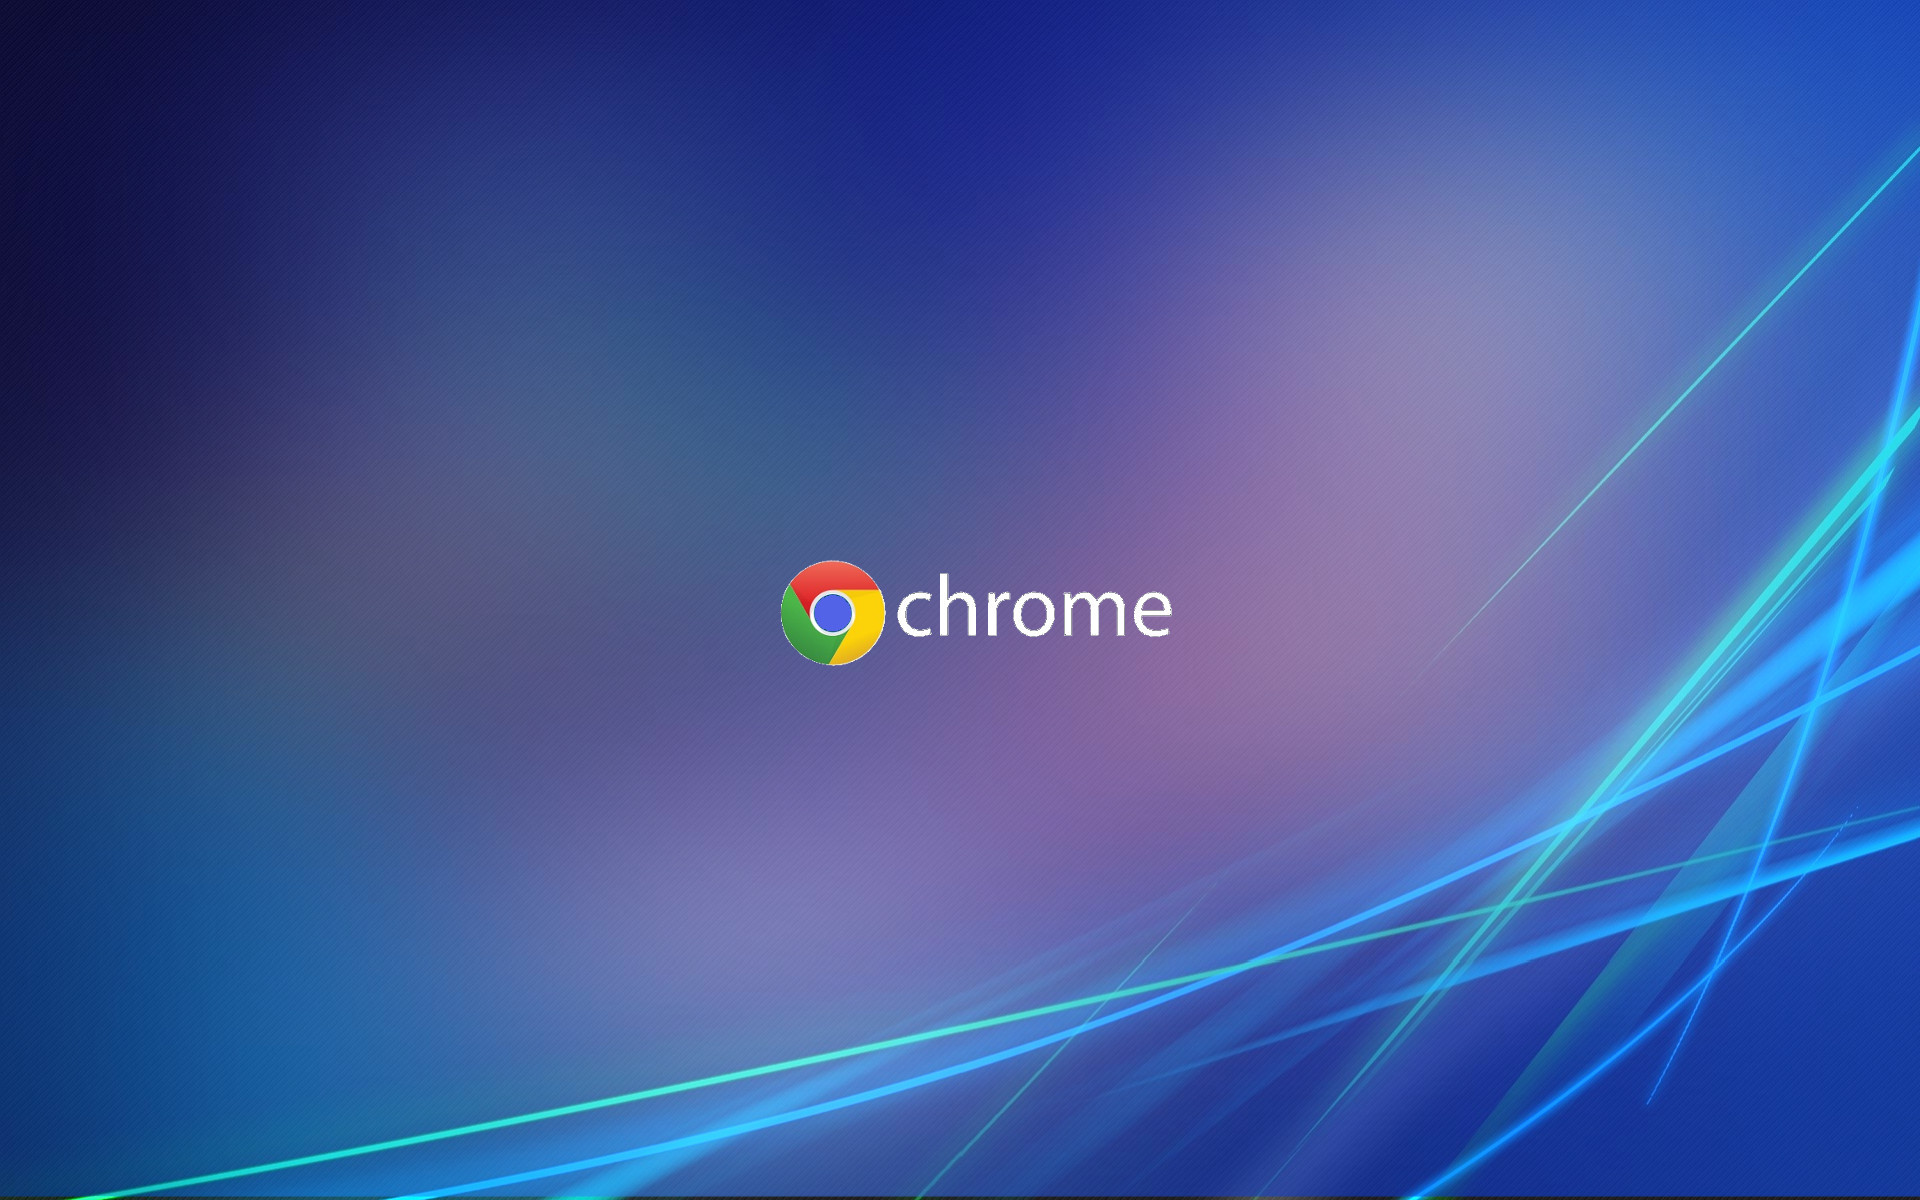 chrome backgrounds 55 images